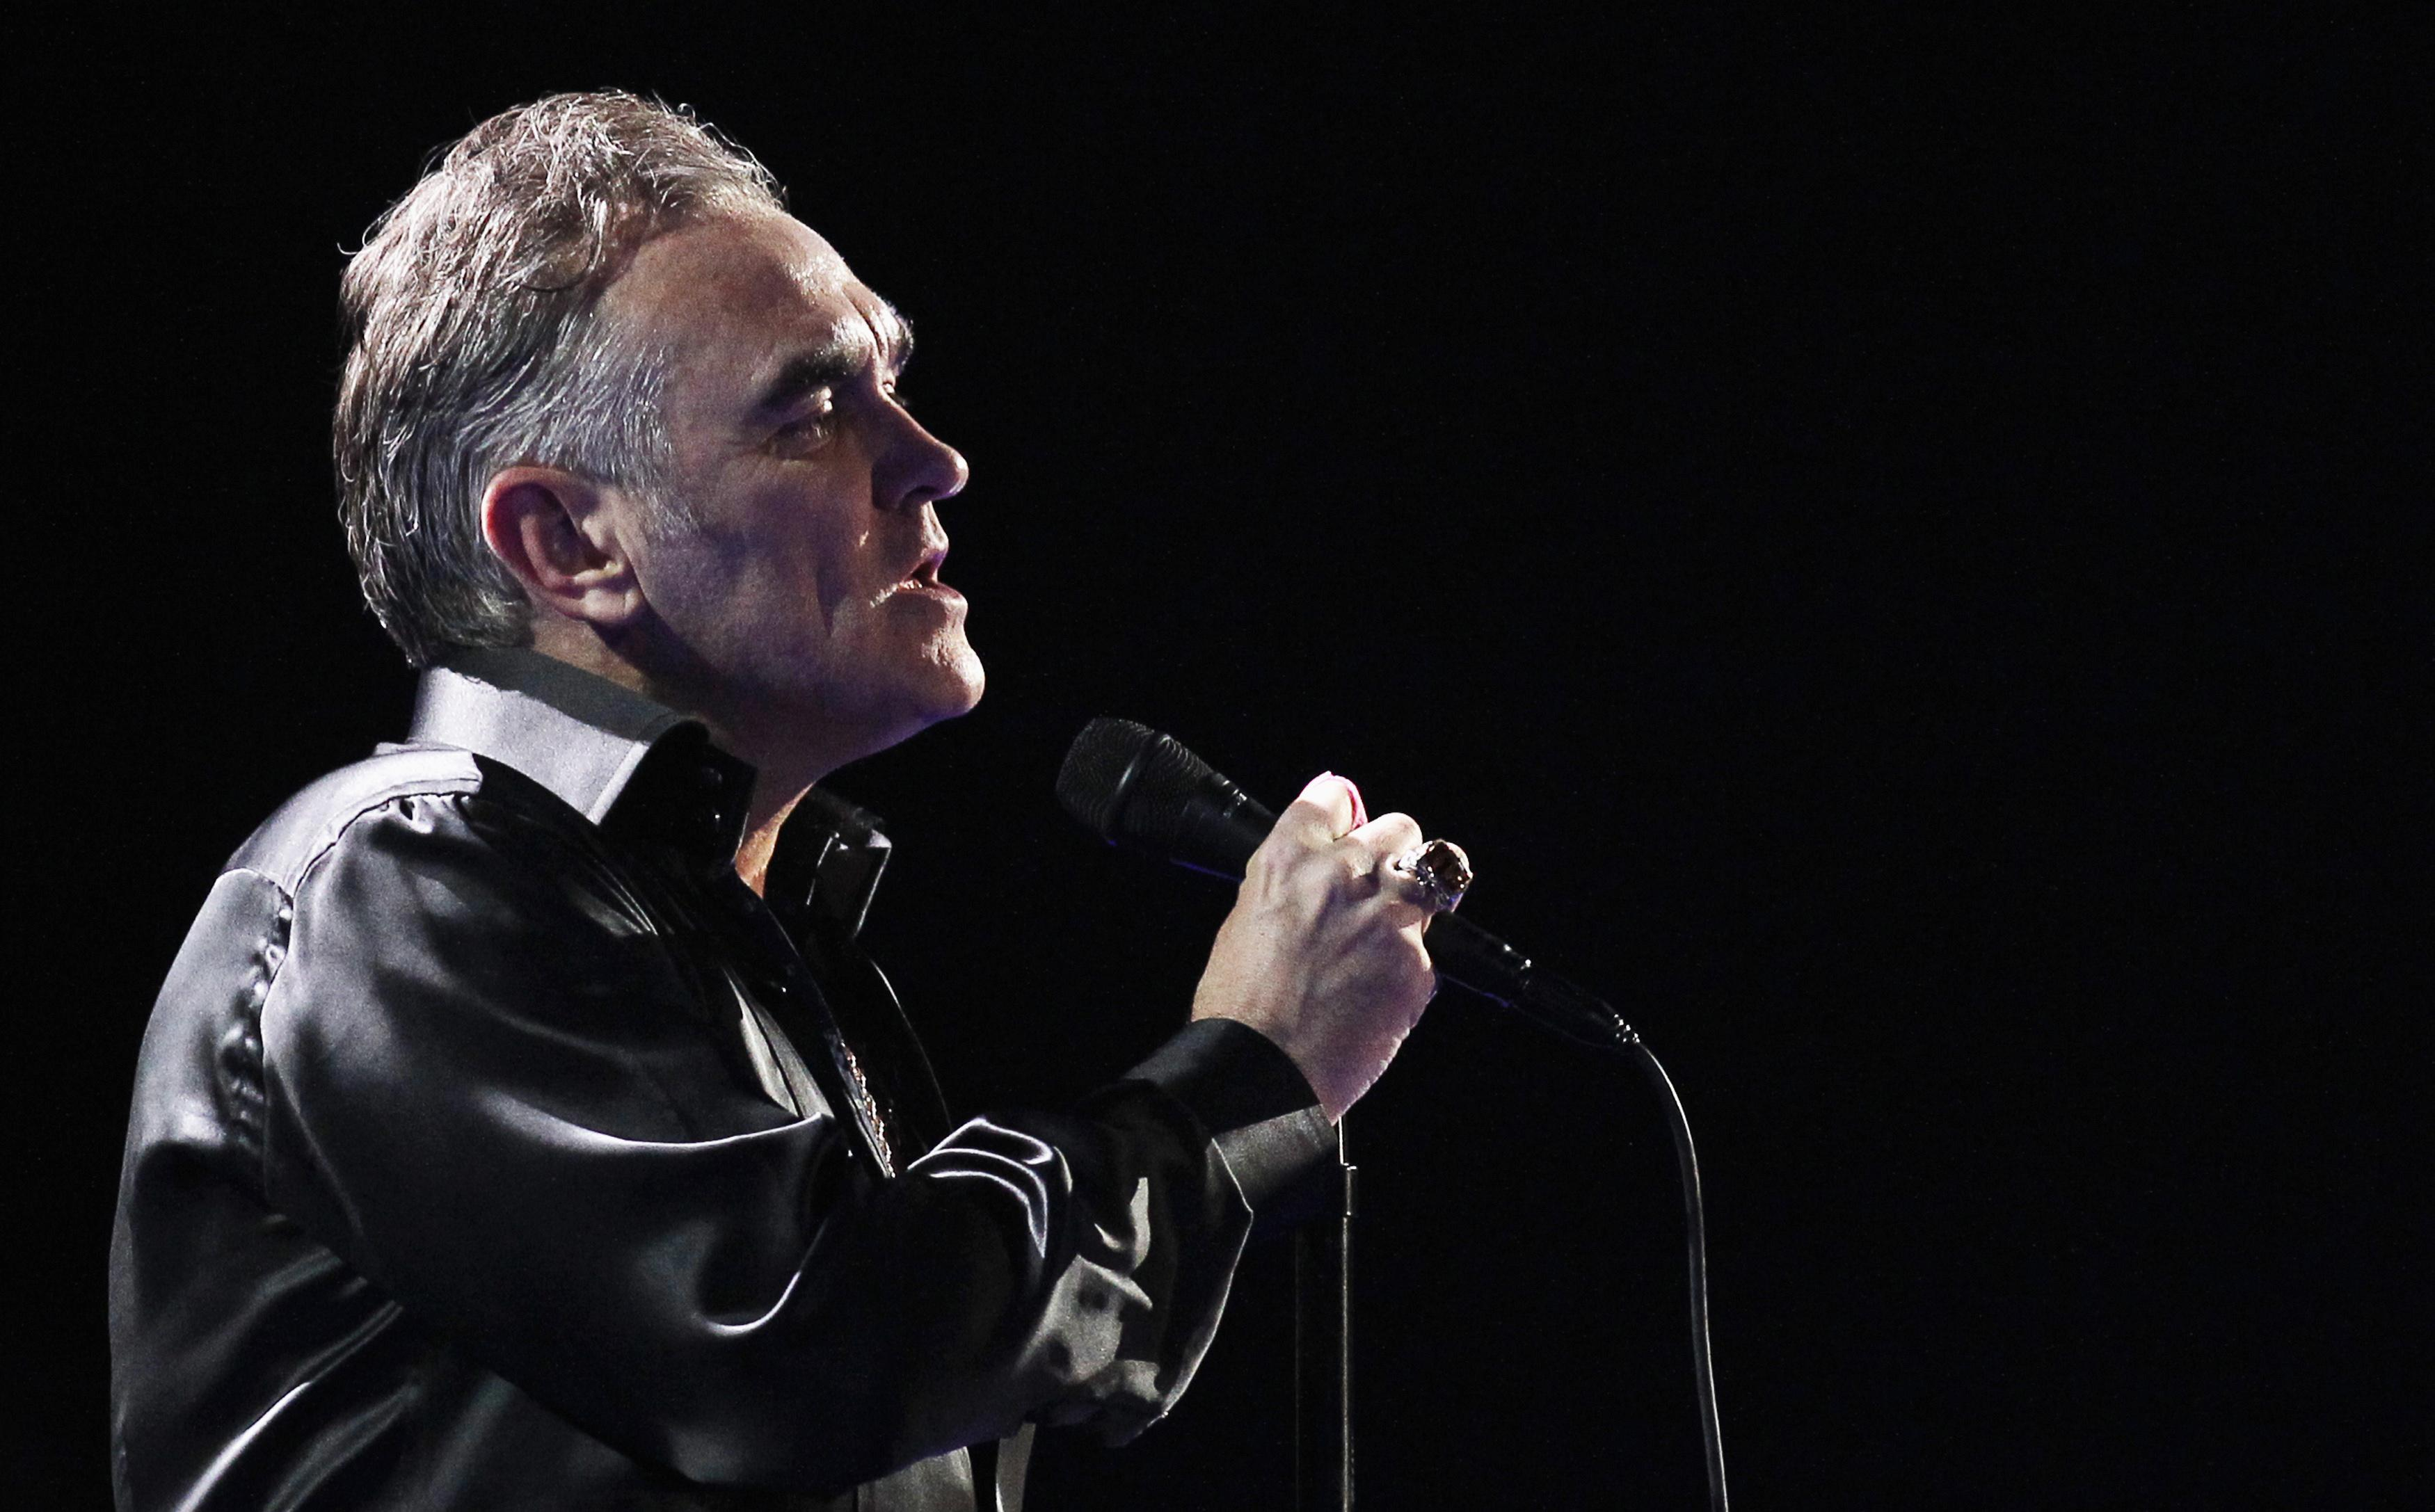 Morrissey issues statement on controversial Kevin Spacey and Harvey Weinstein comments